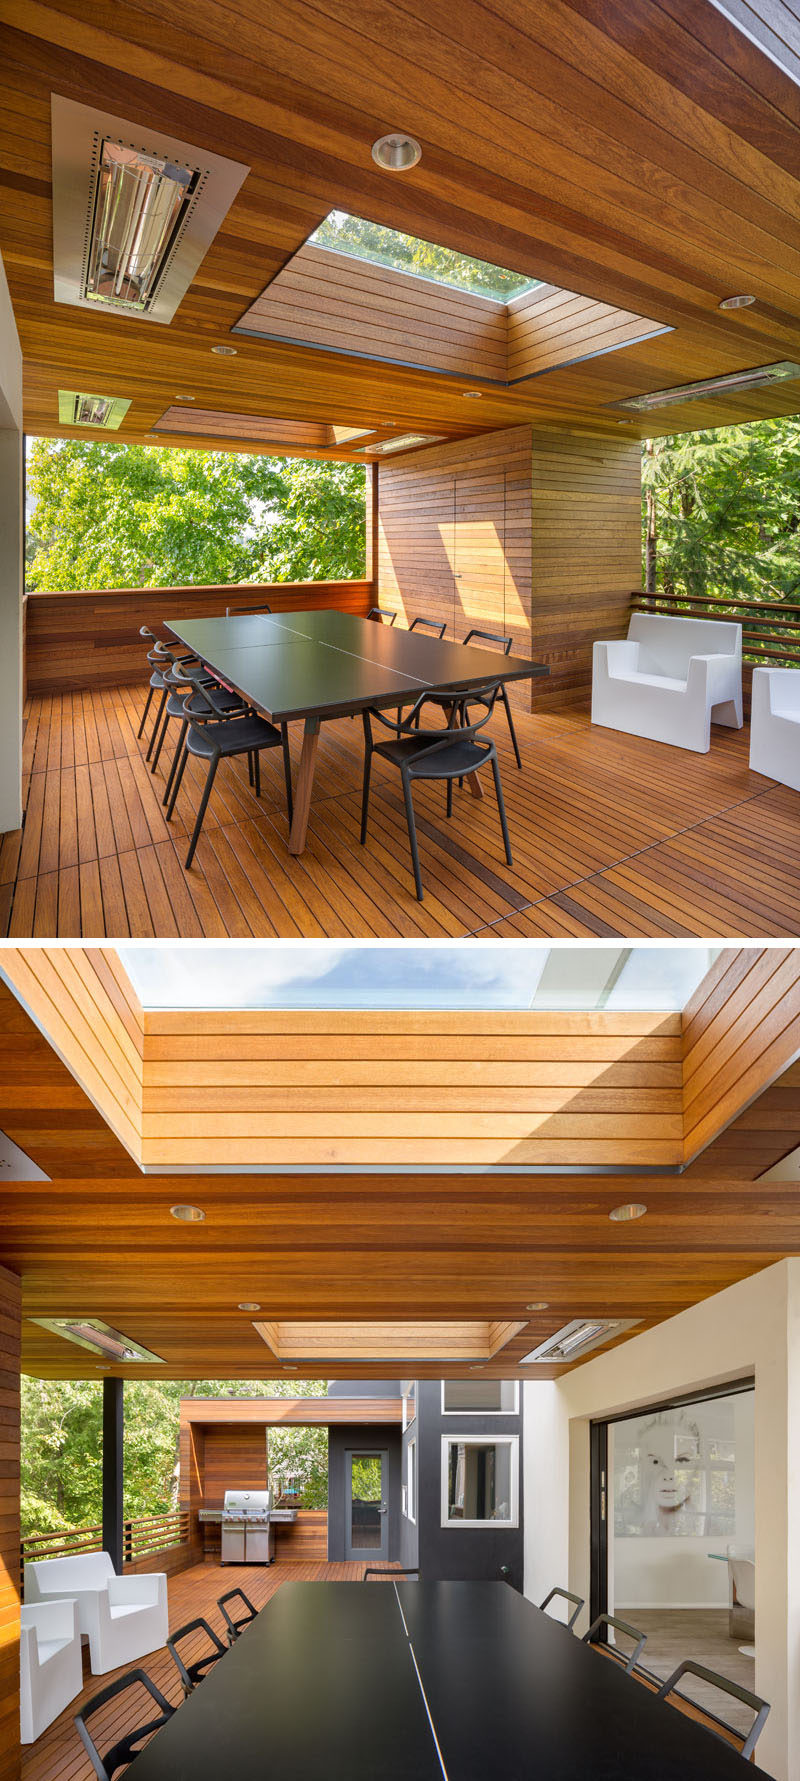 This modern outdoor area has a dining table that converts to a ping pong table, while sky lights and heaters enable year round outdoor dining. #OutdoorDining #Skylights